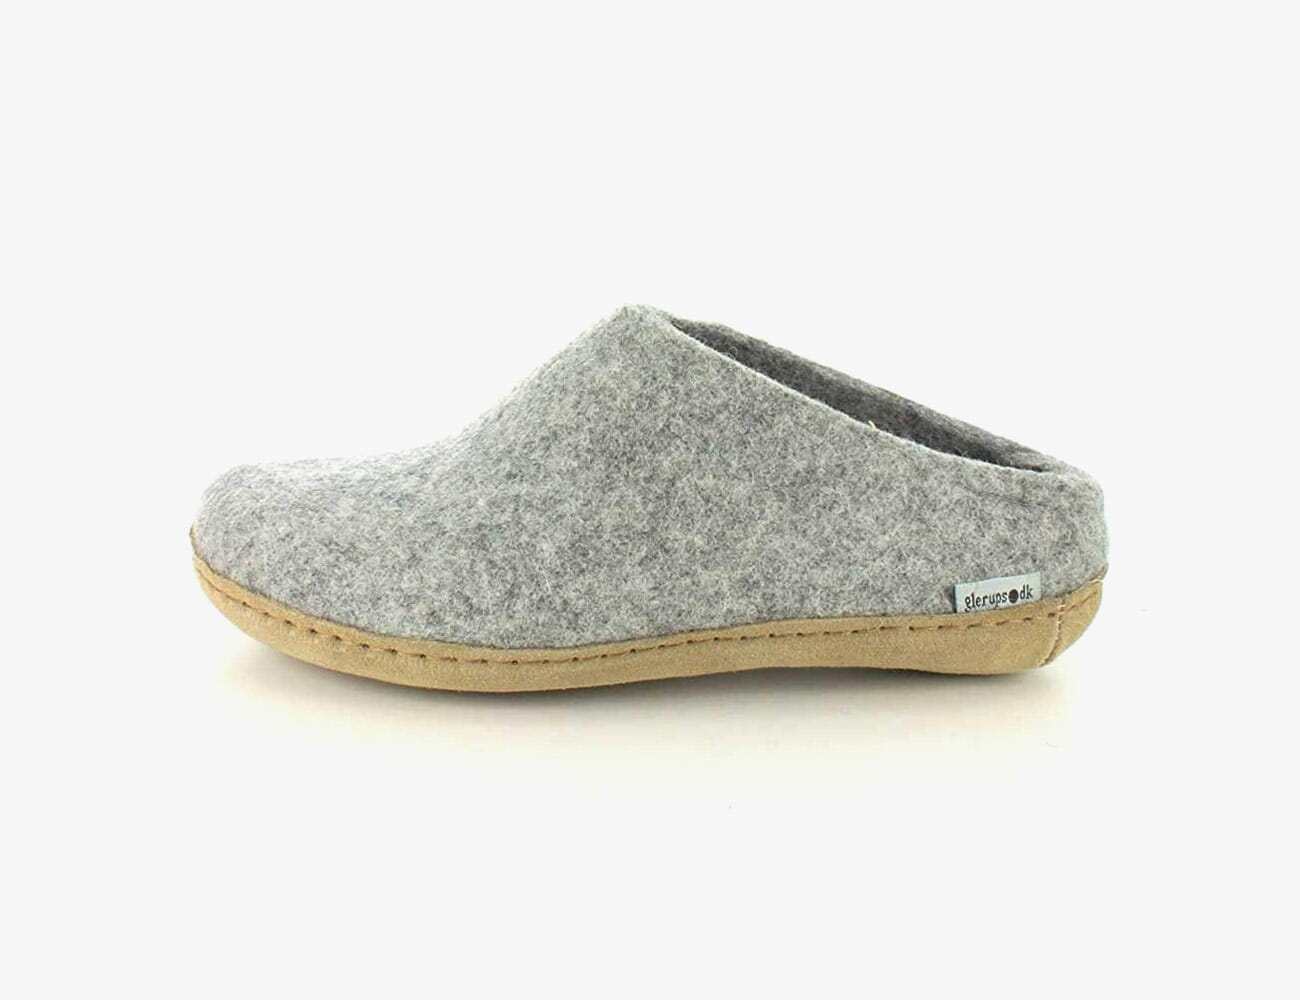 9ad7369c1b6 Giving the gift of comfort is never a bad way to go. For those cozy days  in